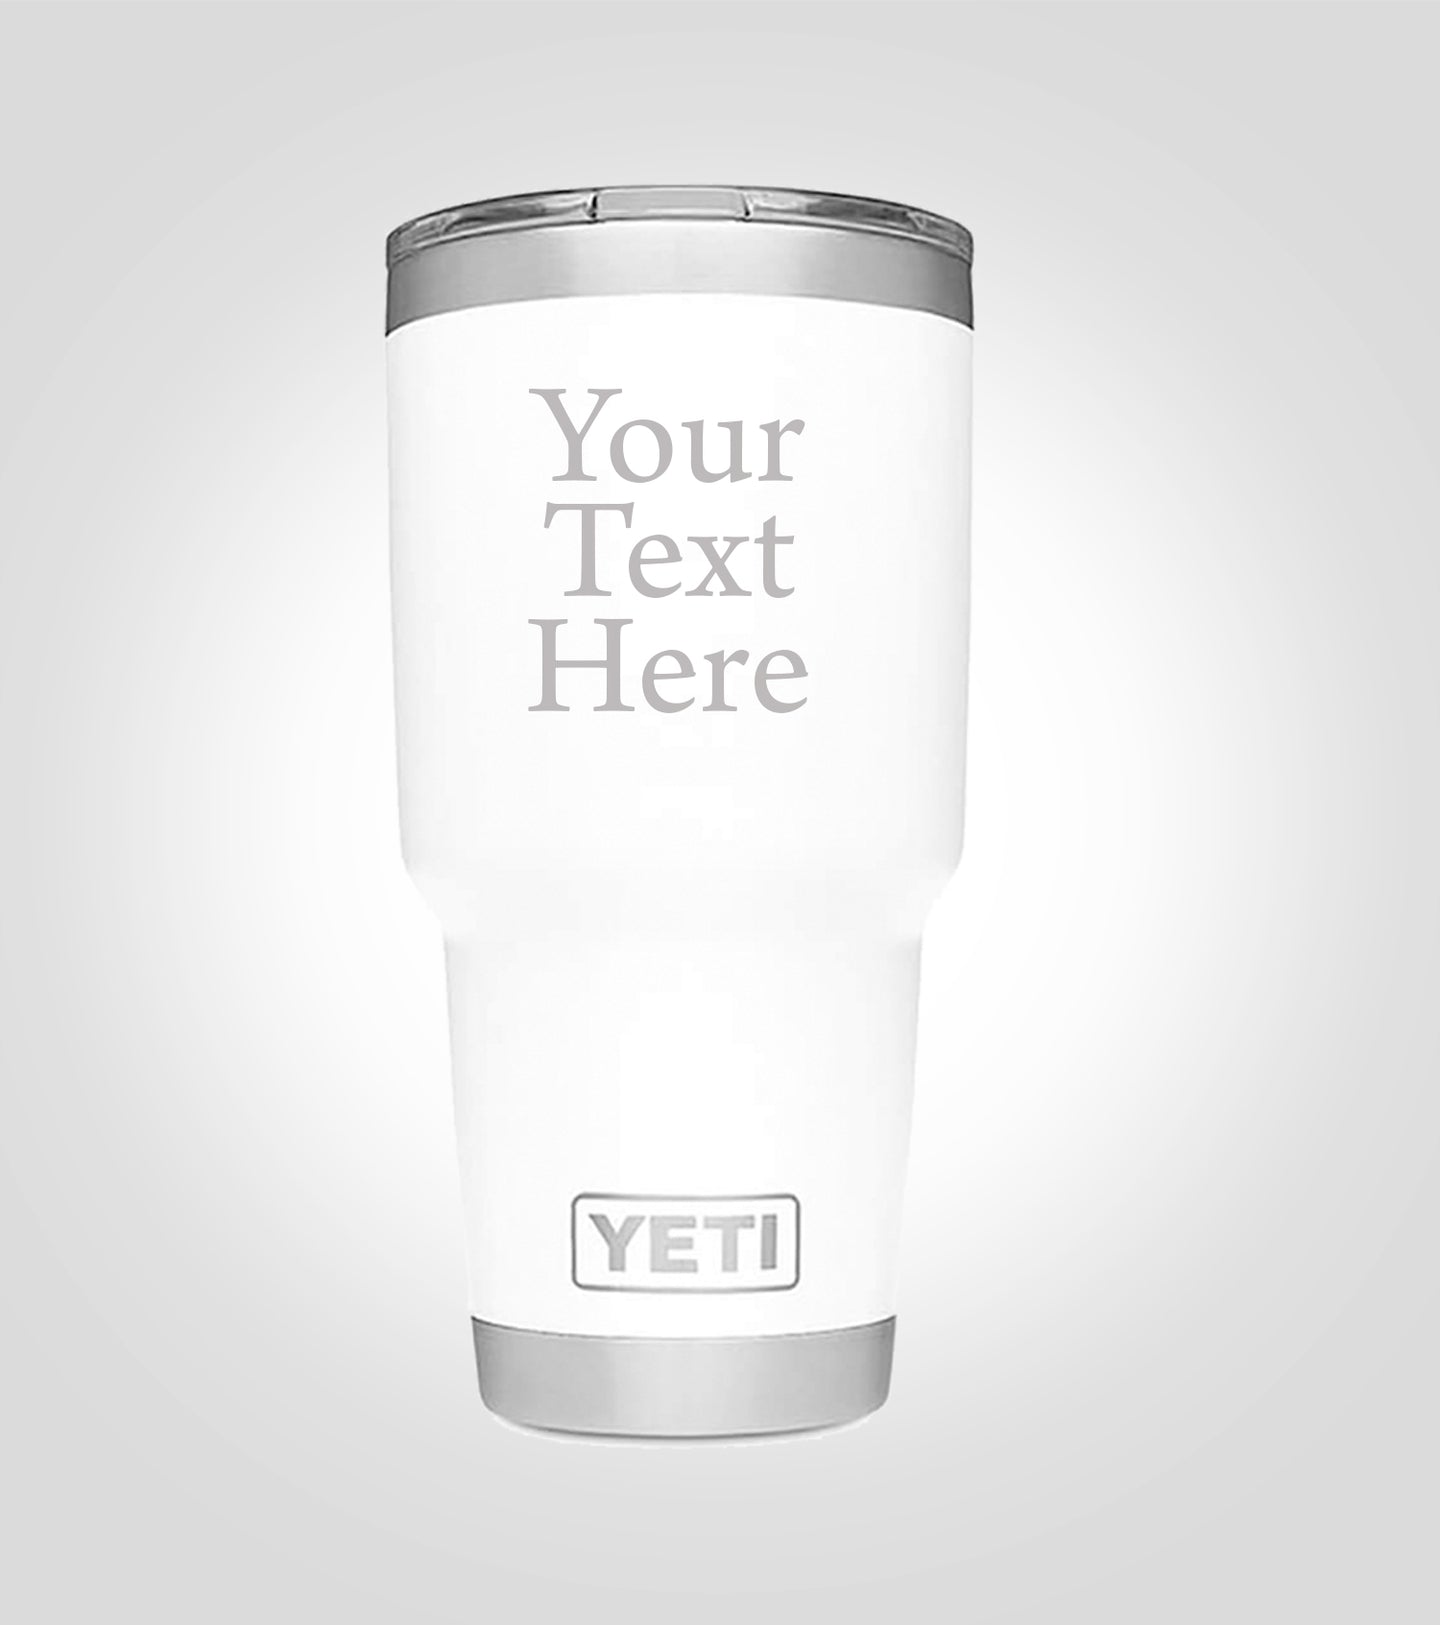 Yeti 30 oz. Tumbler | Your Text Here